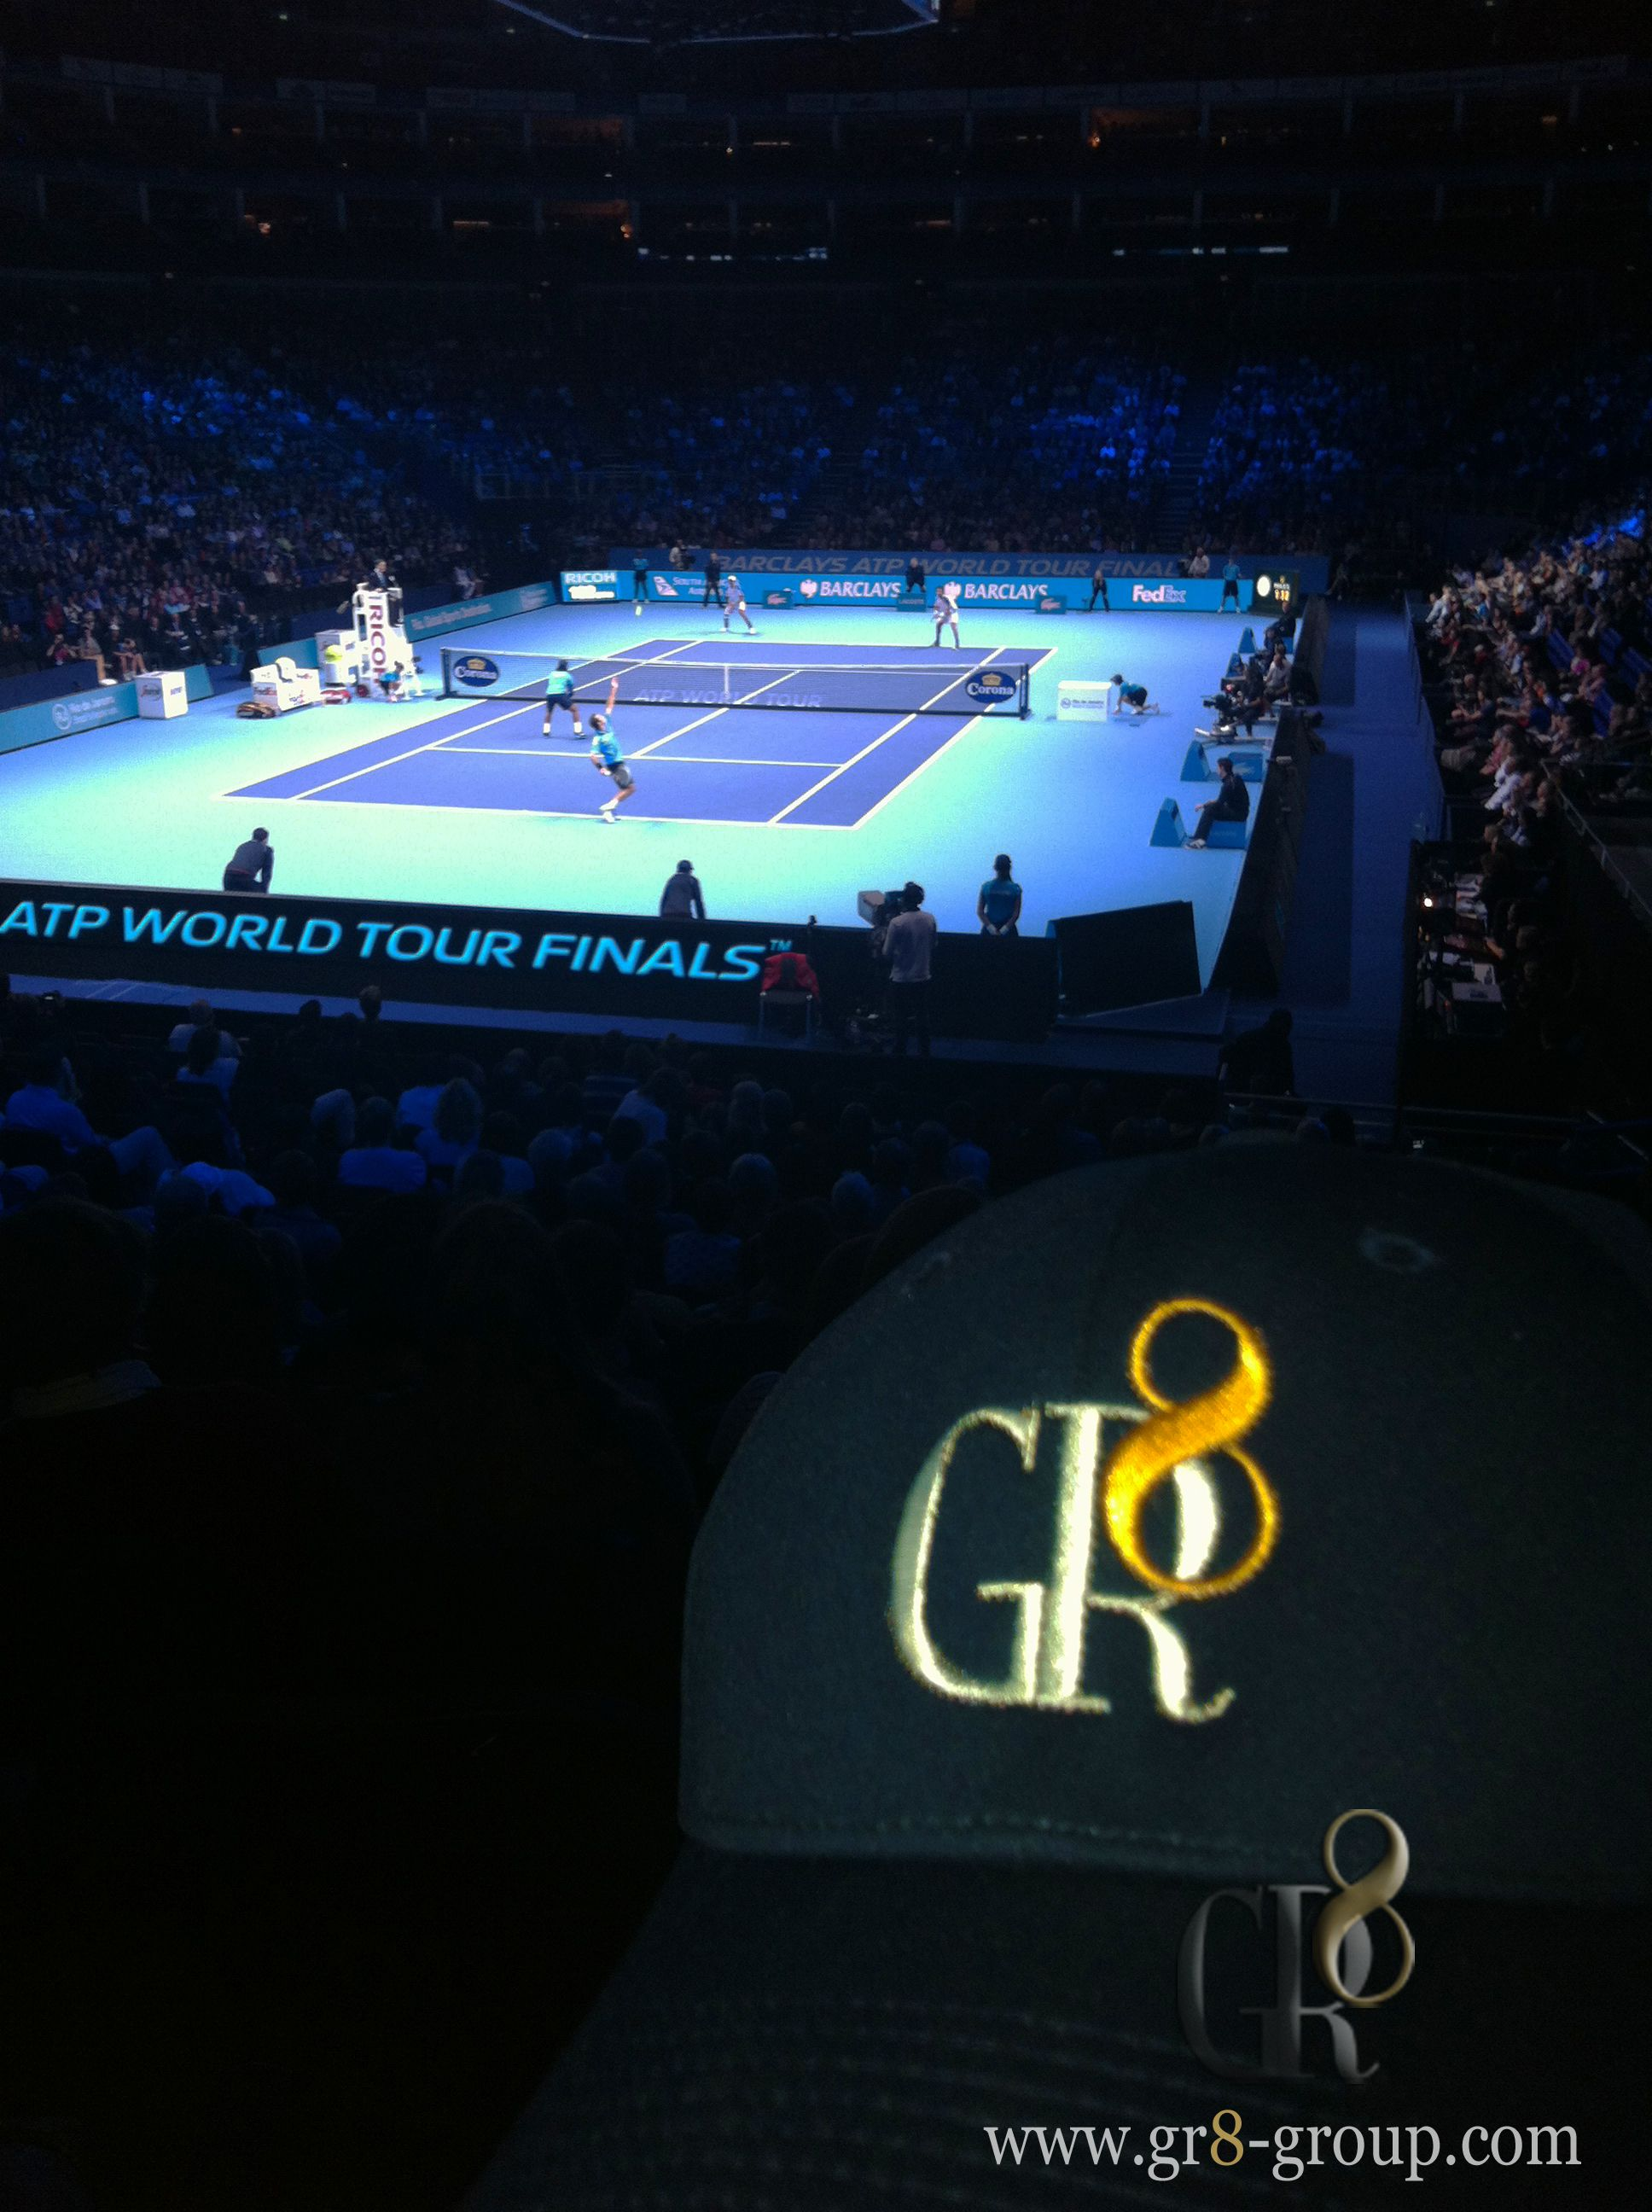 GR8 at the Barclays ATP World Tour Finals! Great end to the season!